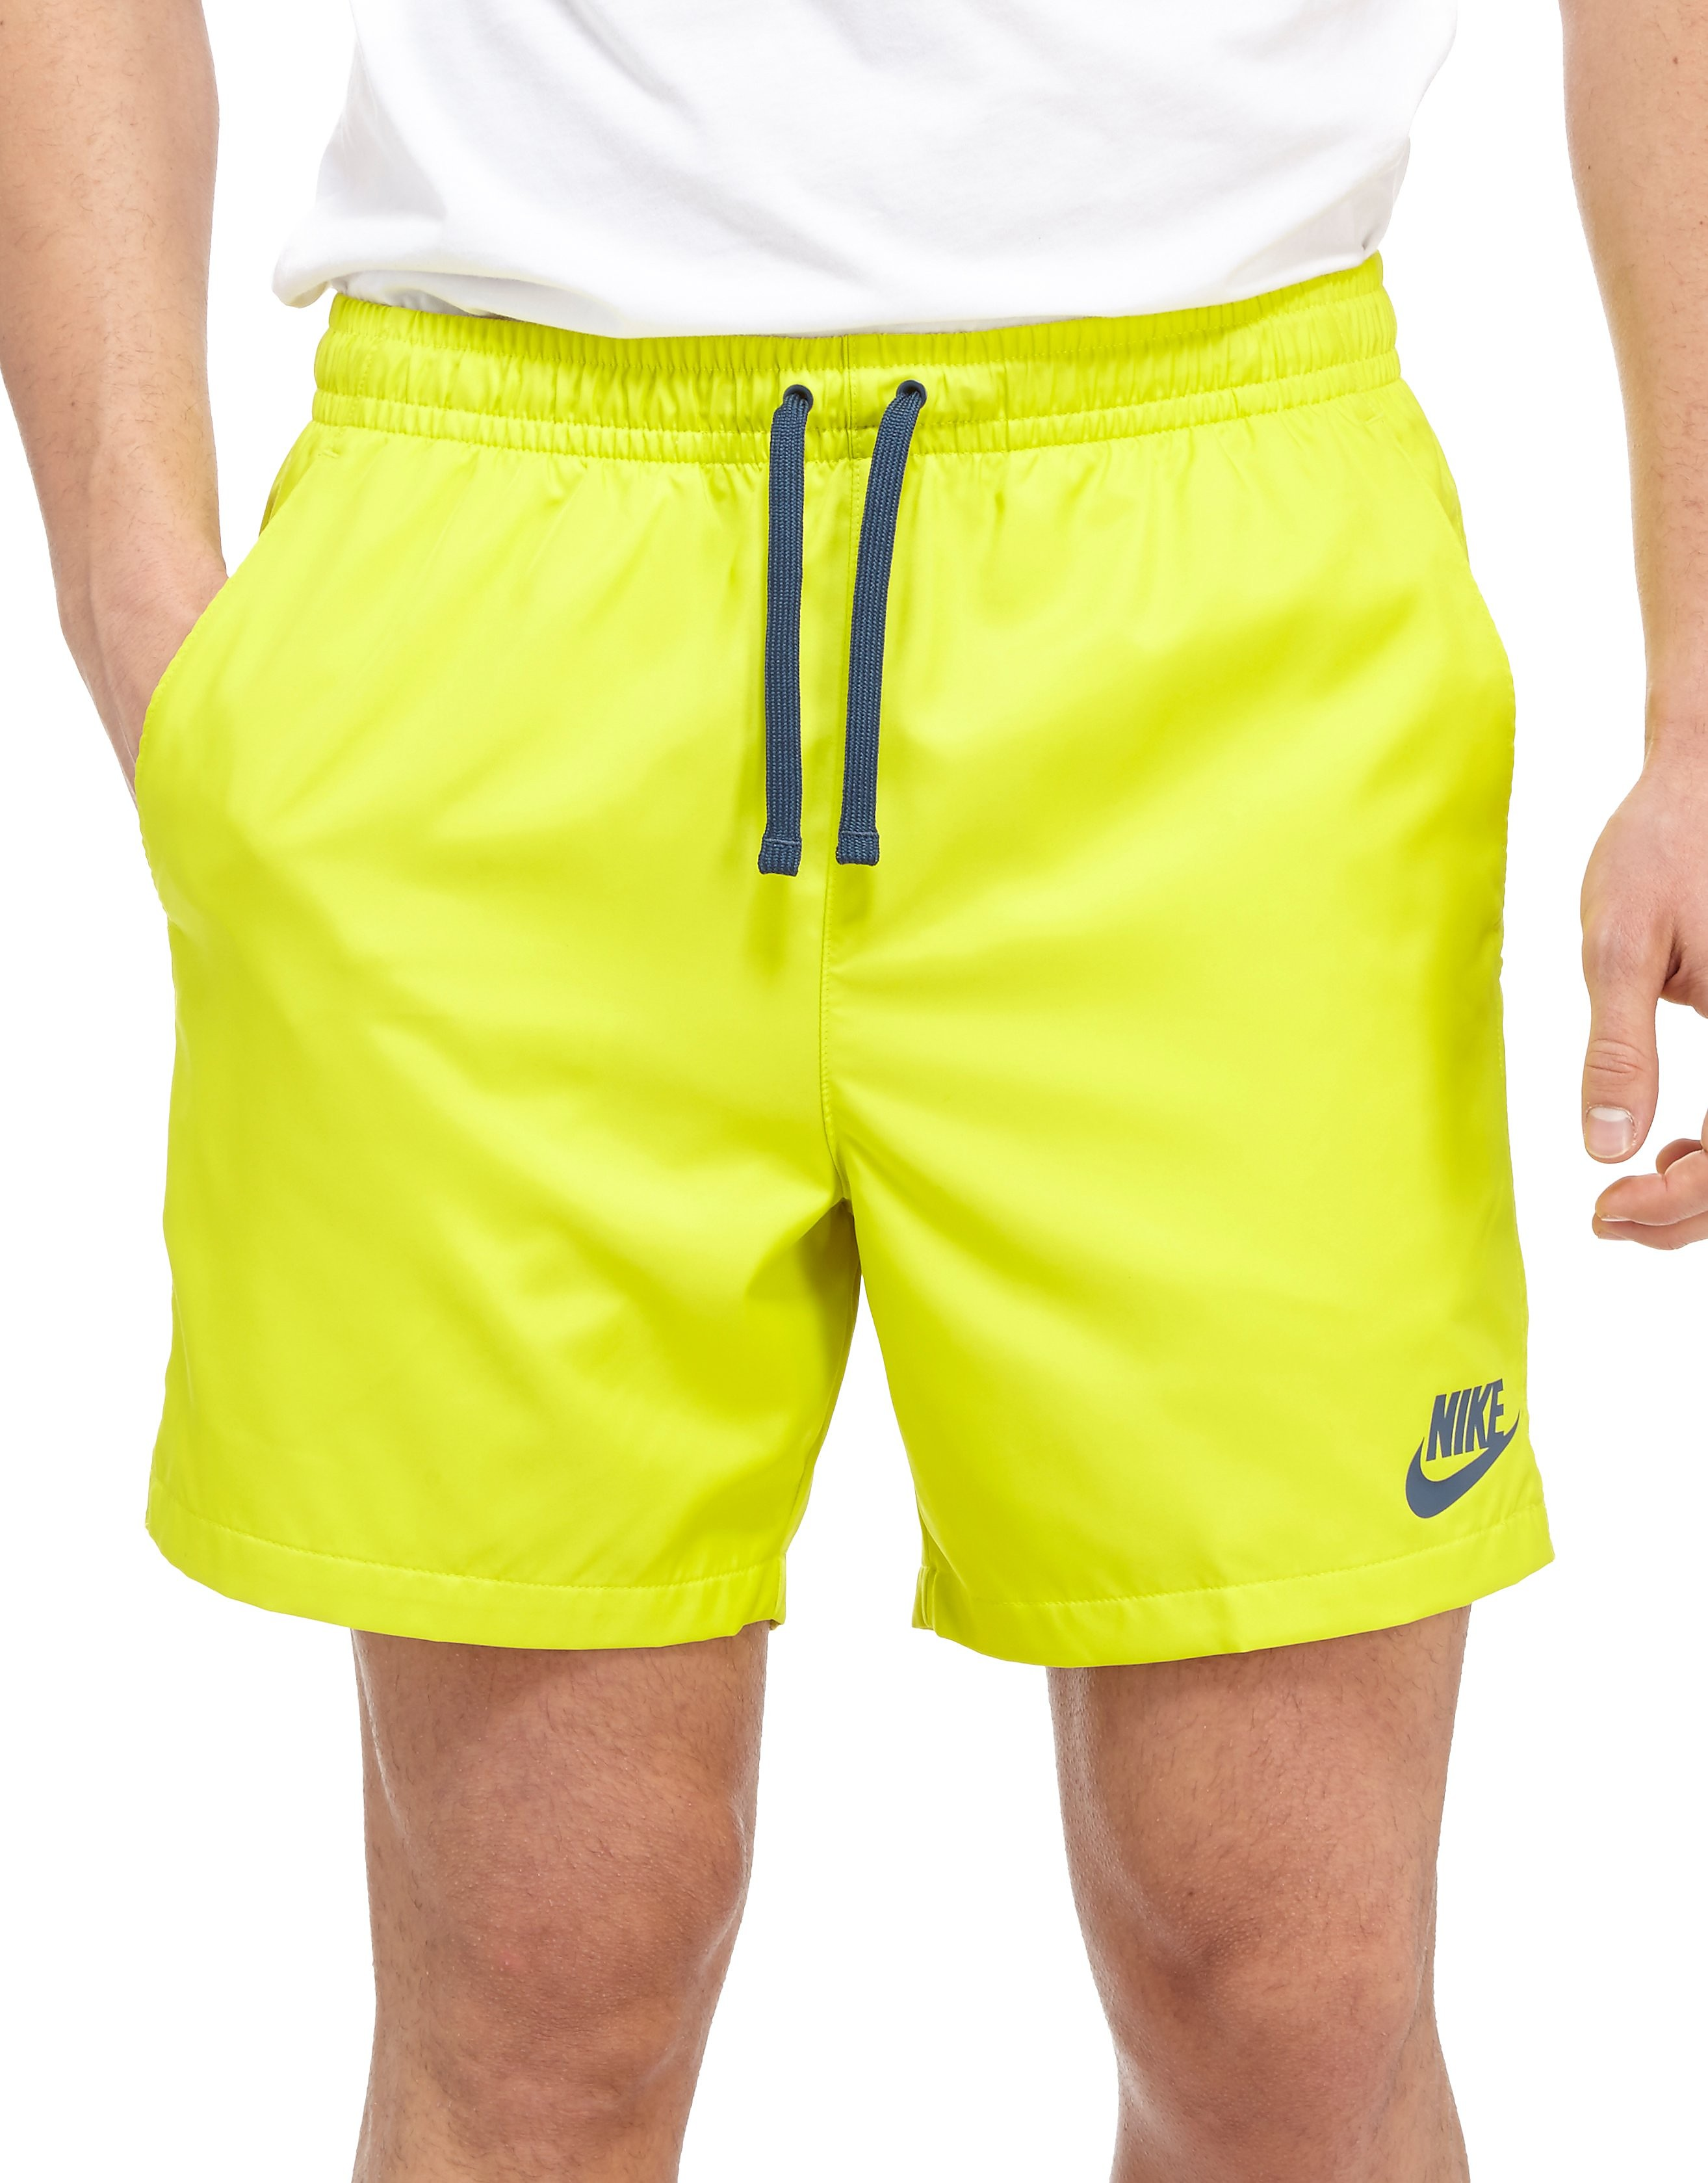 Nike Flow Swimming Short